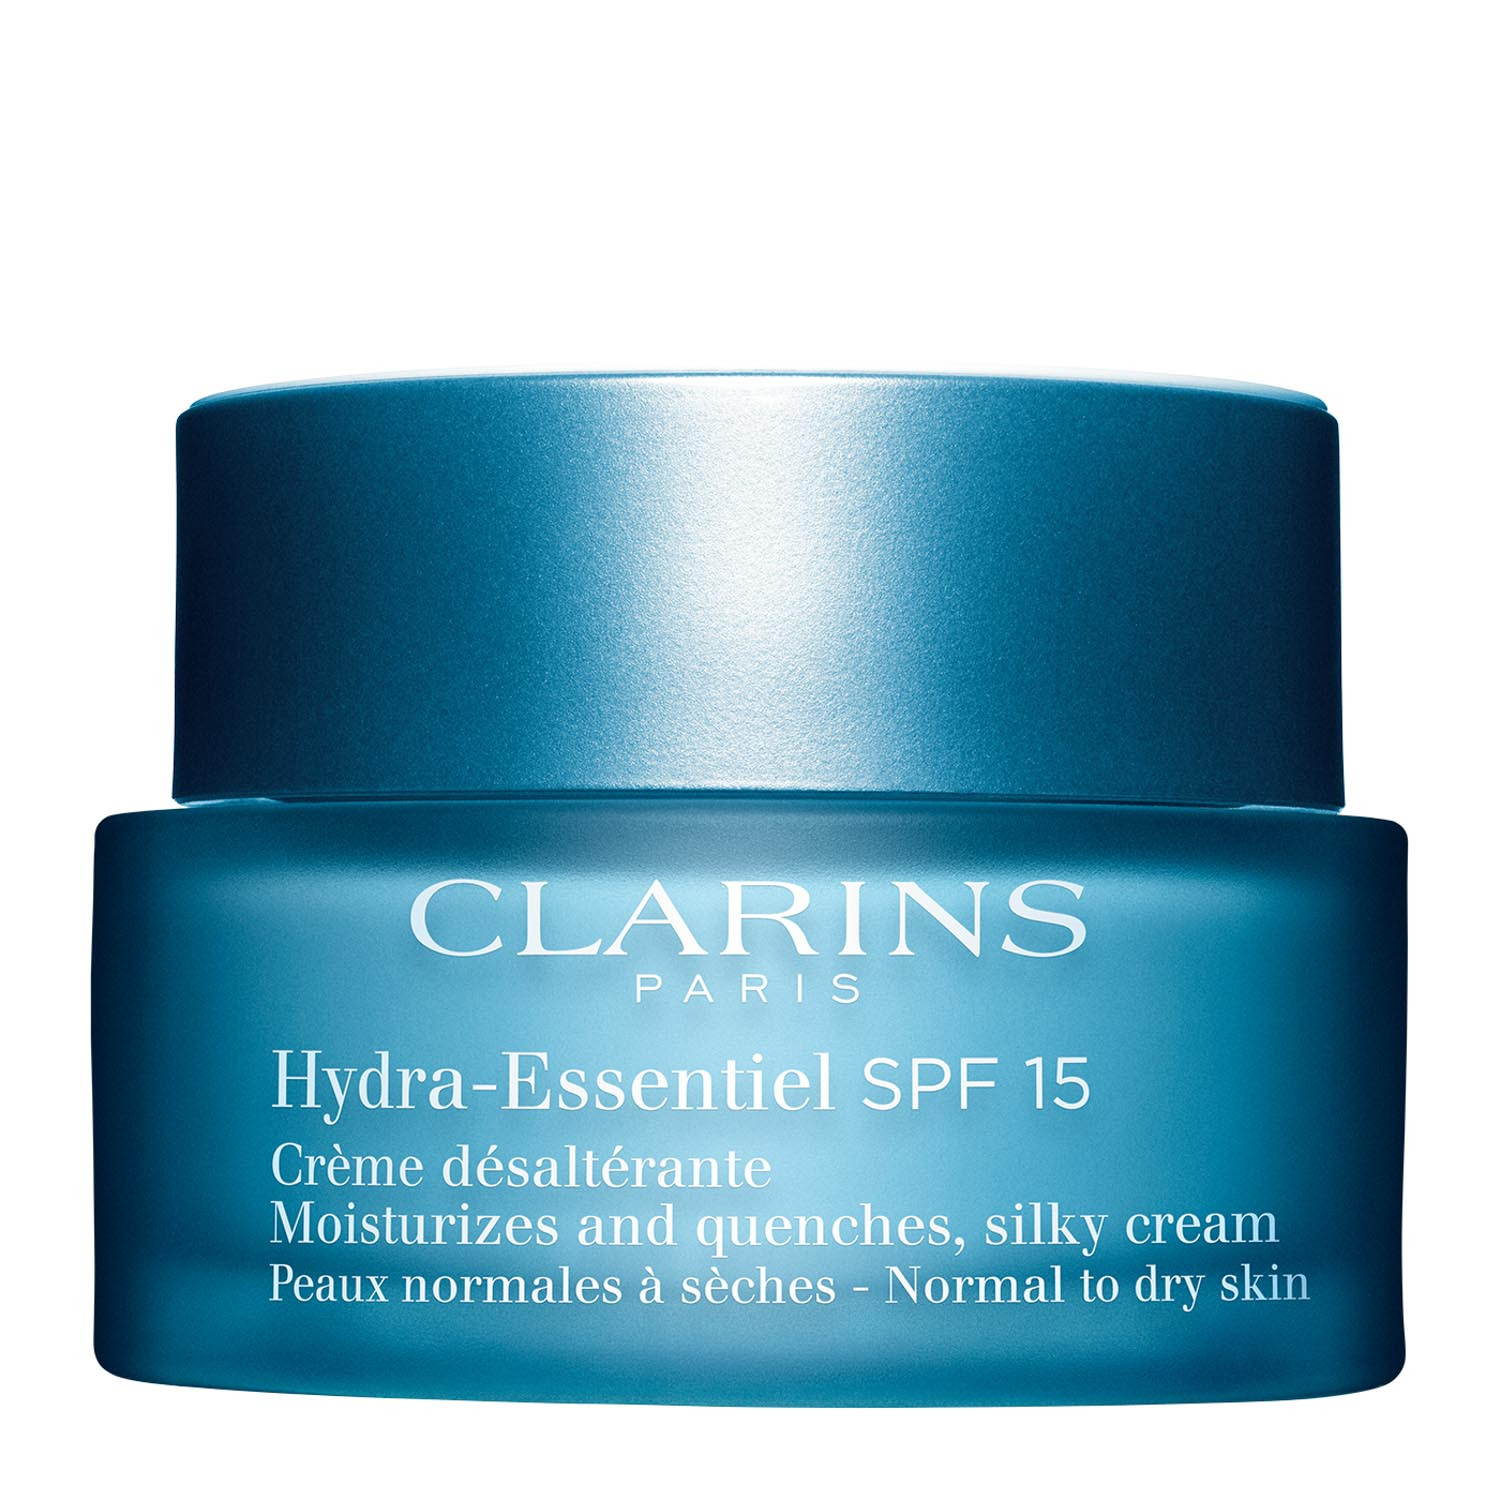 Clarins Hydra-Essentiel Silky Cream SPF 15 - Normal to Dry Skin - 50ml